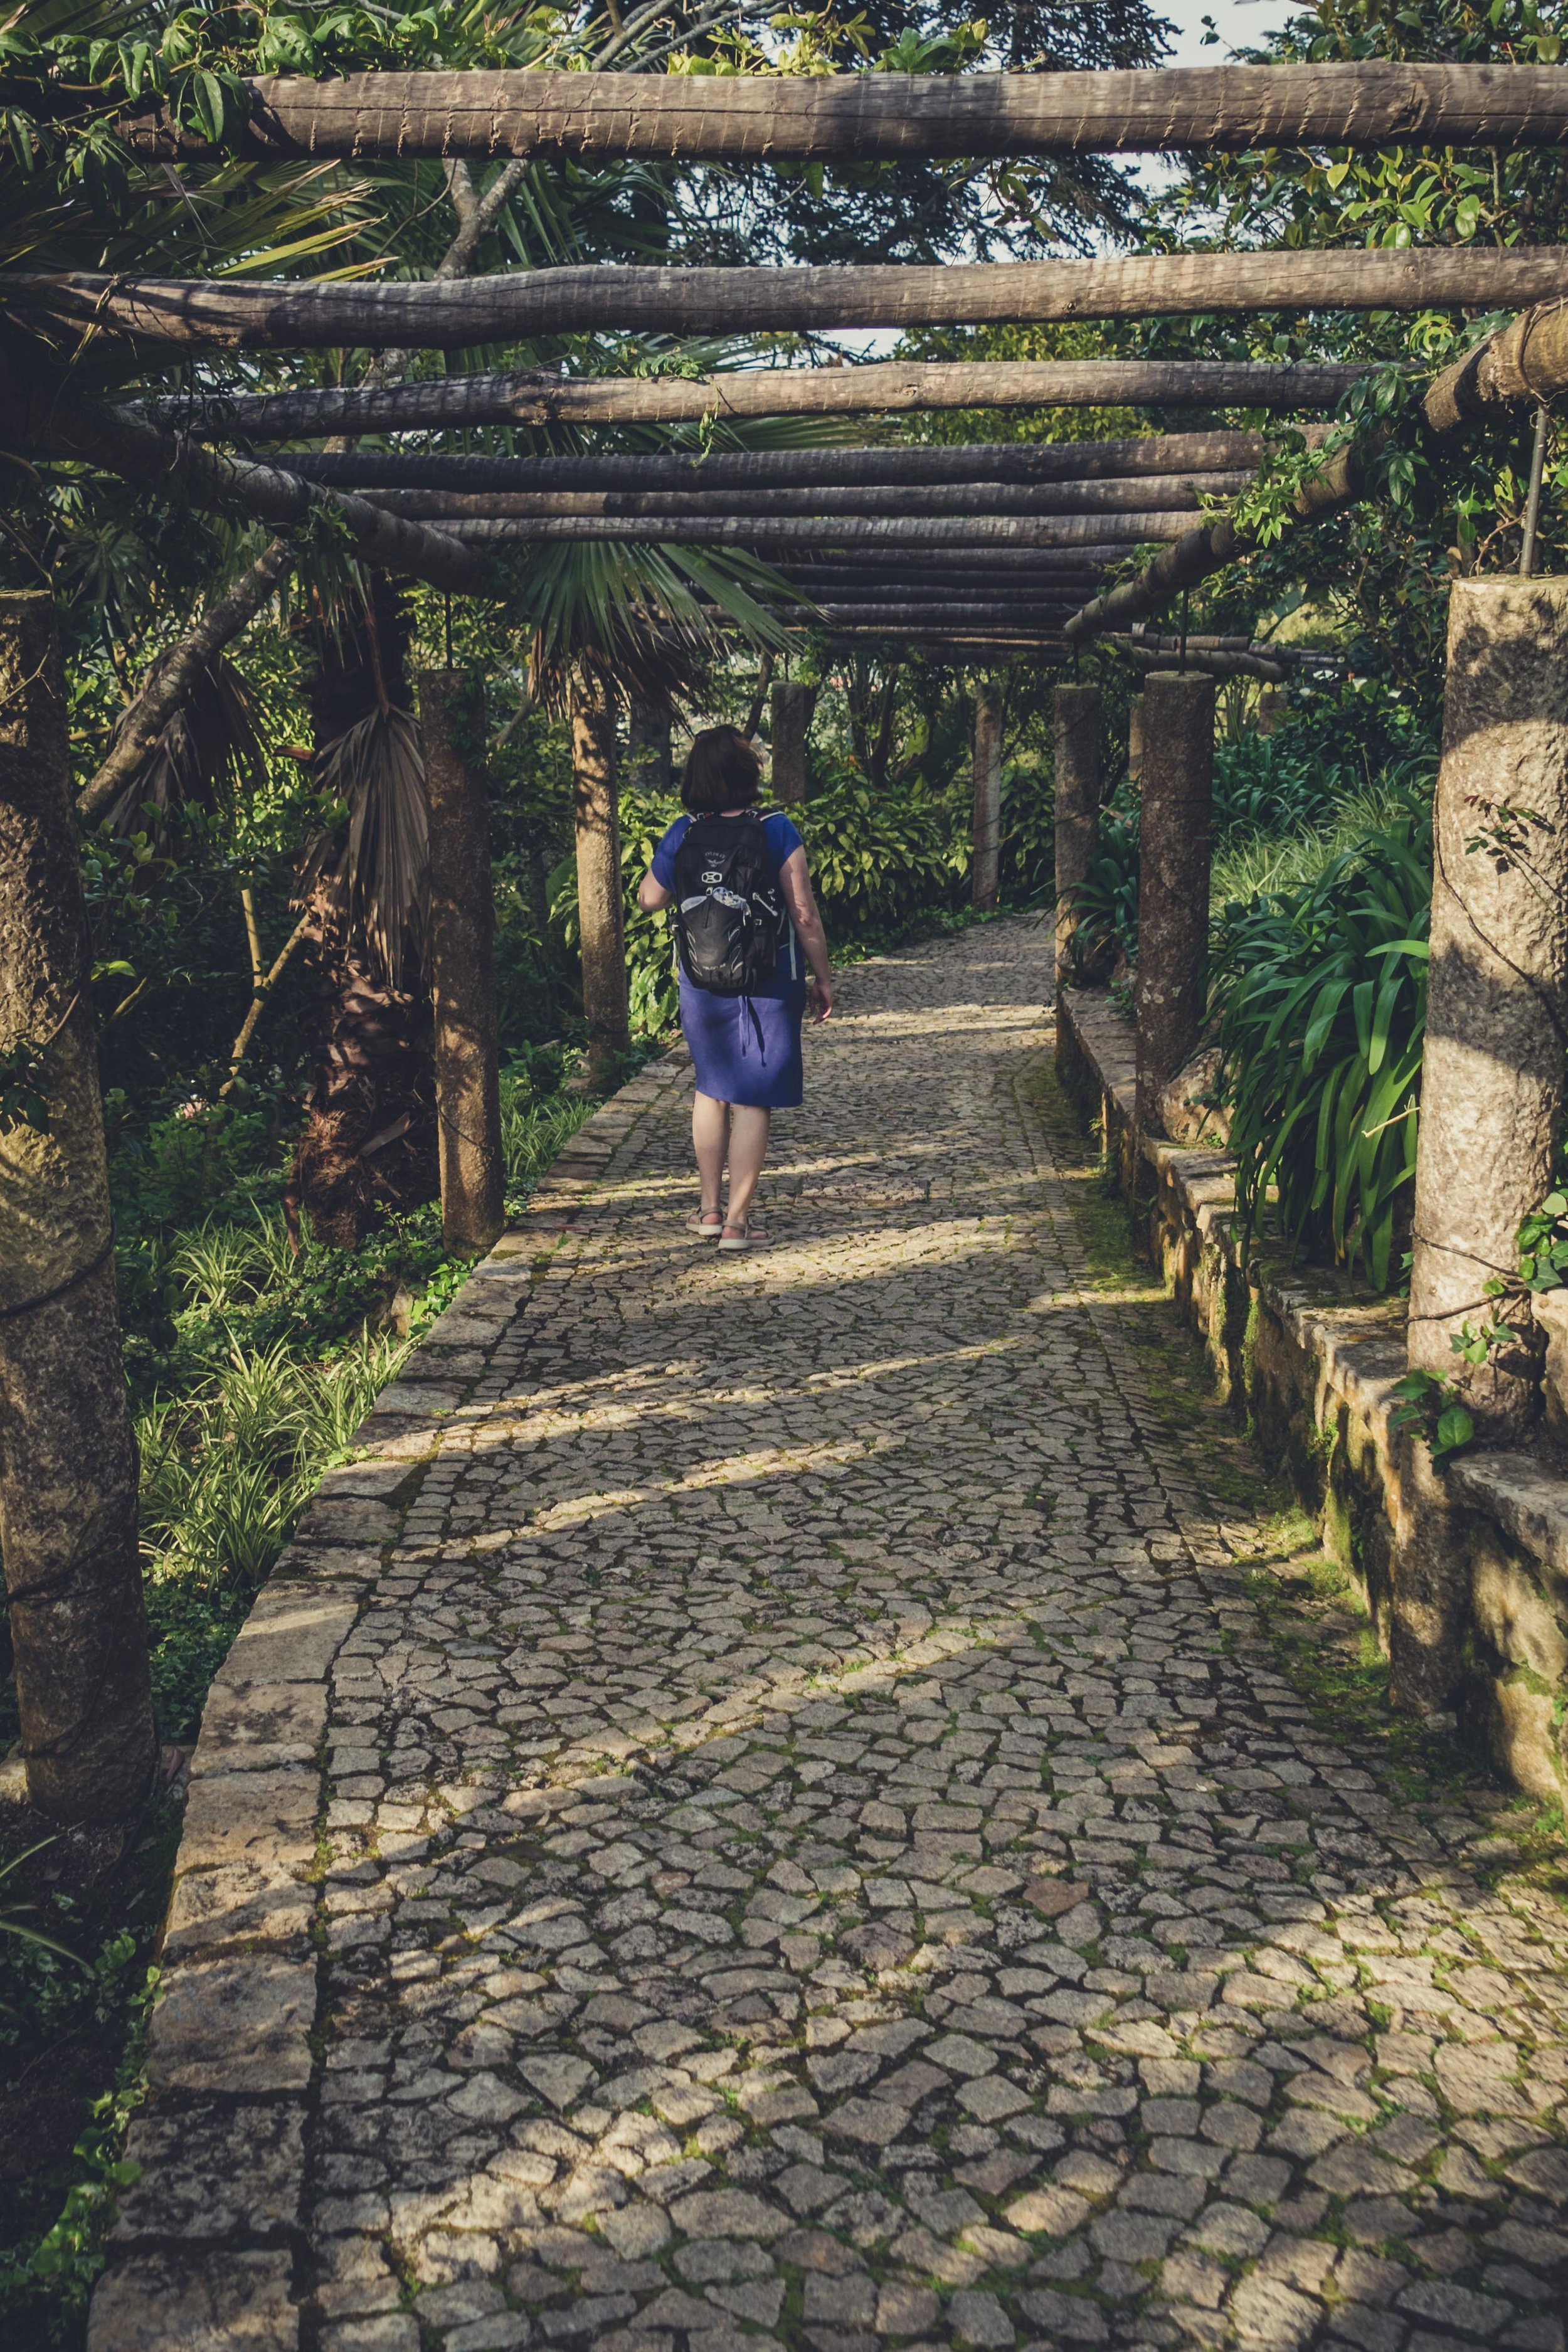 Portugal. Travel. Sintra. Sunshine. Hotel. History. view. room with a view. pena palace.  palace. town. old town. castle. castelo dos mouros. on the bridge. Convent of the Capuchos. walking down.jpg